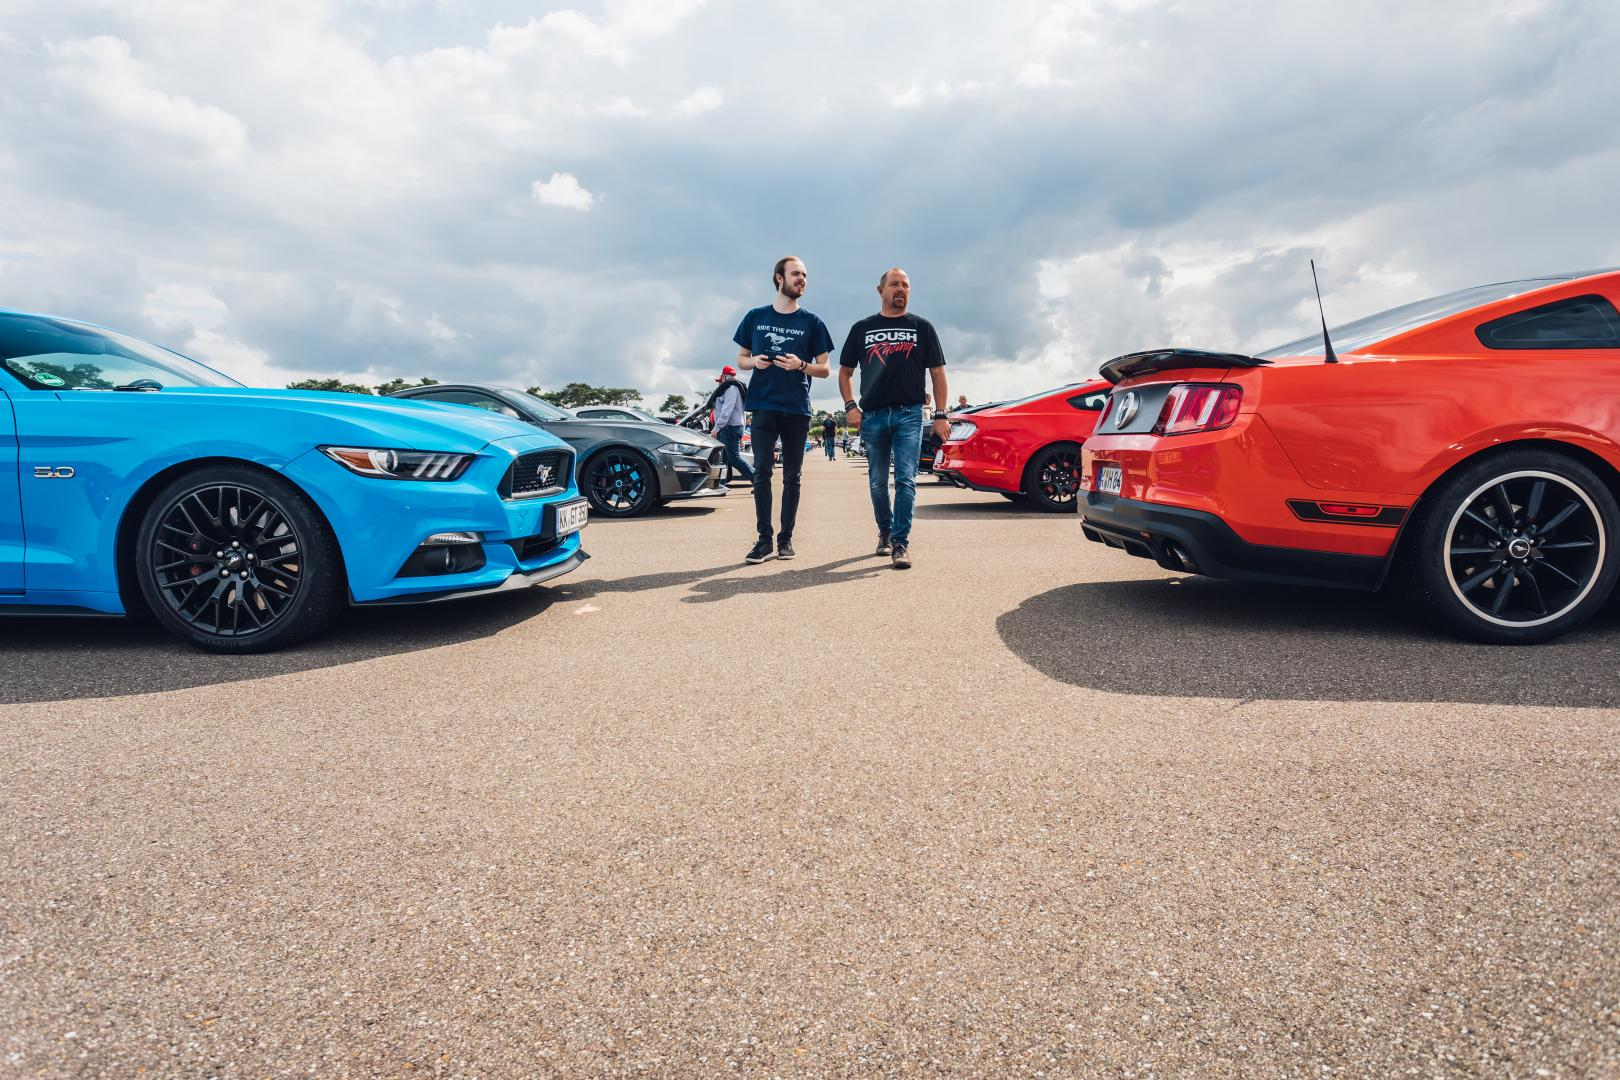 Ford Mustang wereldrecord